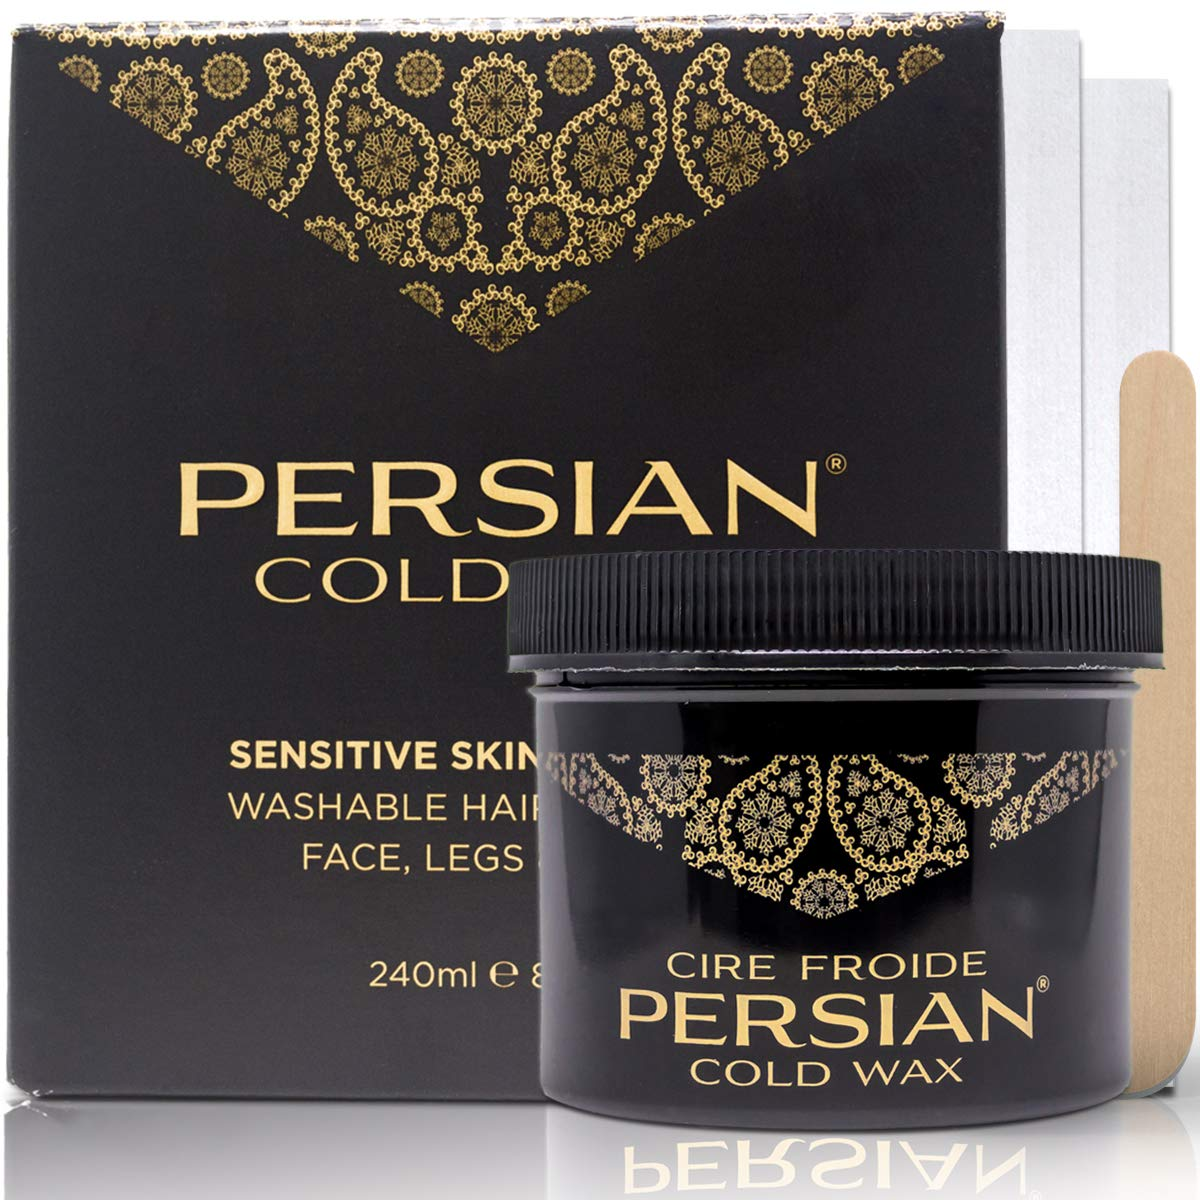 Persian Cold Wax Hair Remover Kit, 1 Count